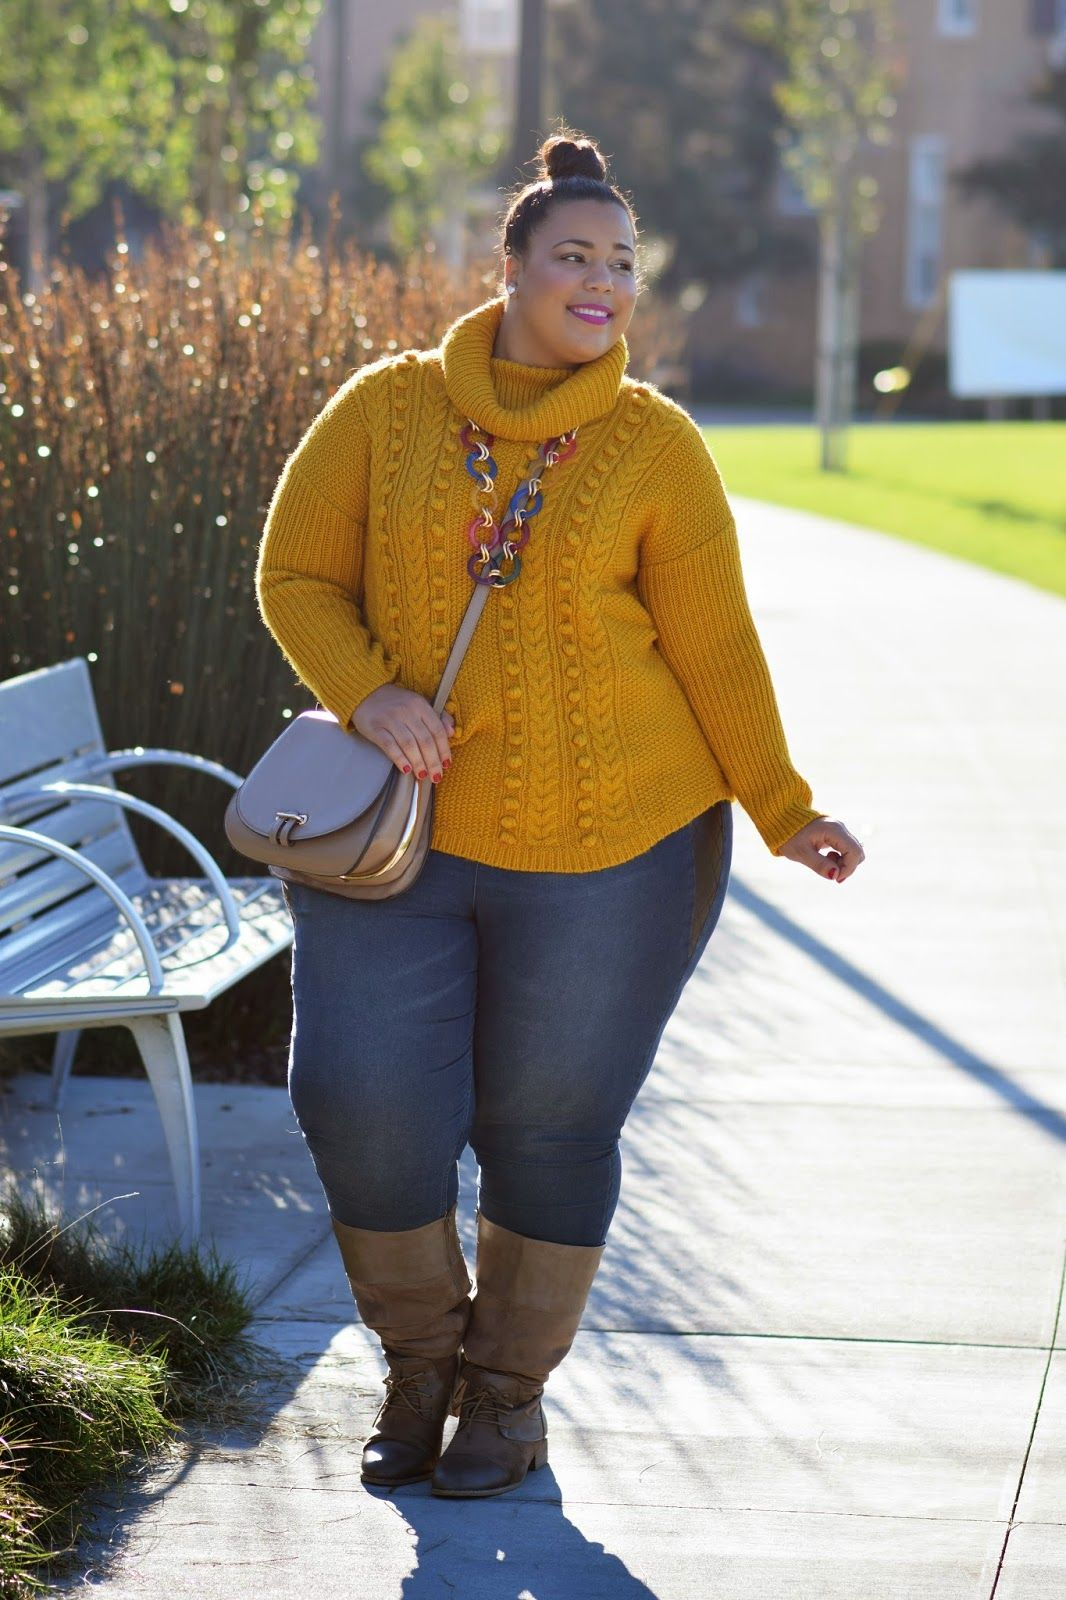 Bella Curves | A Curvy Girl's Haven: STYLE GUIDE | 4 UNIQUE PLUS-SIZE SWEATERS LOOKS TO TRY THIS SEASON